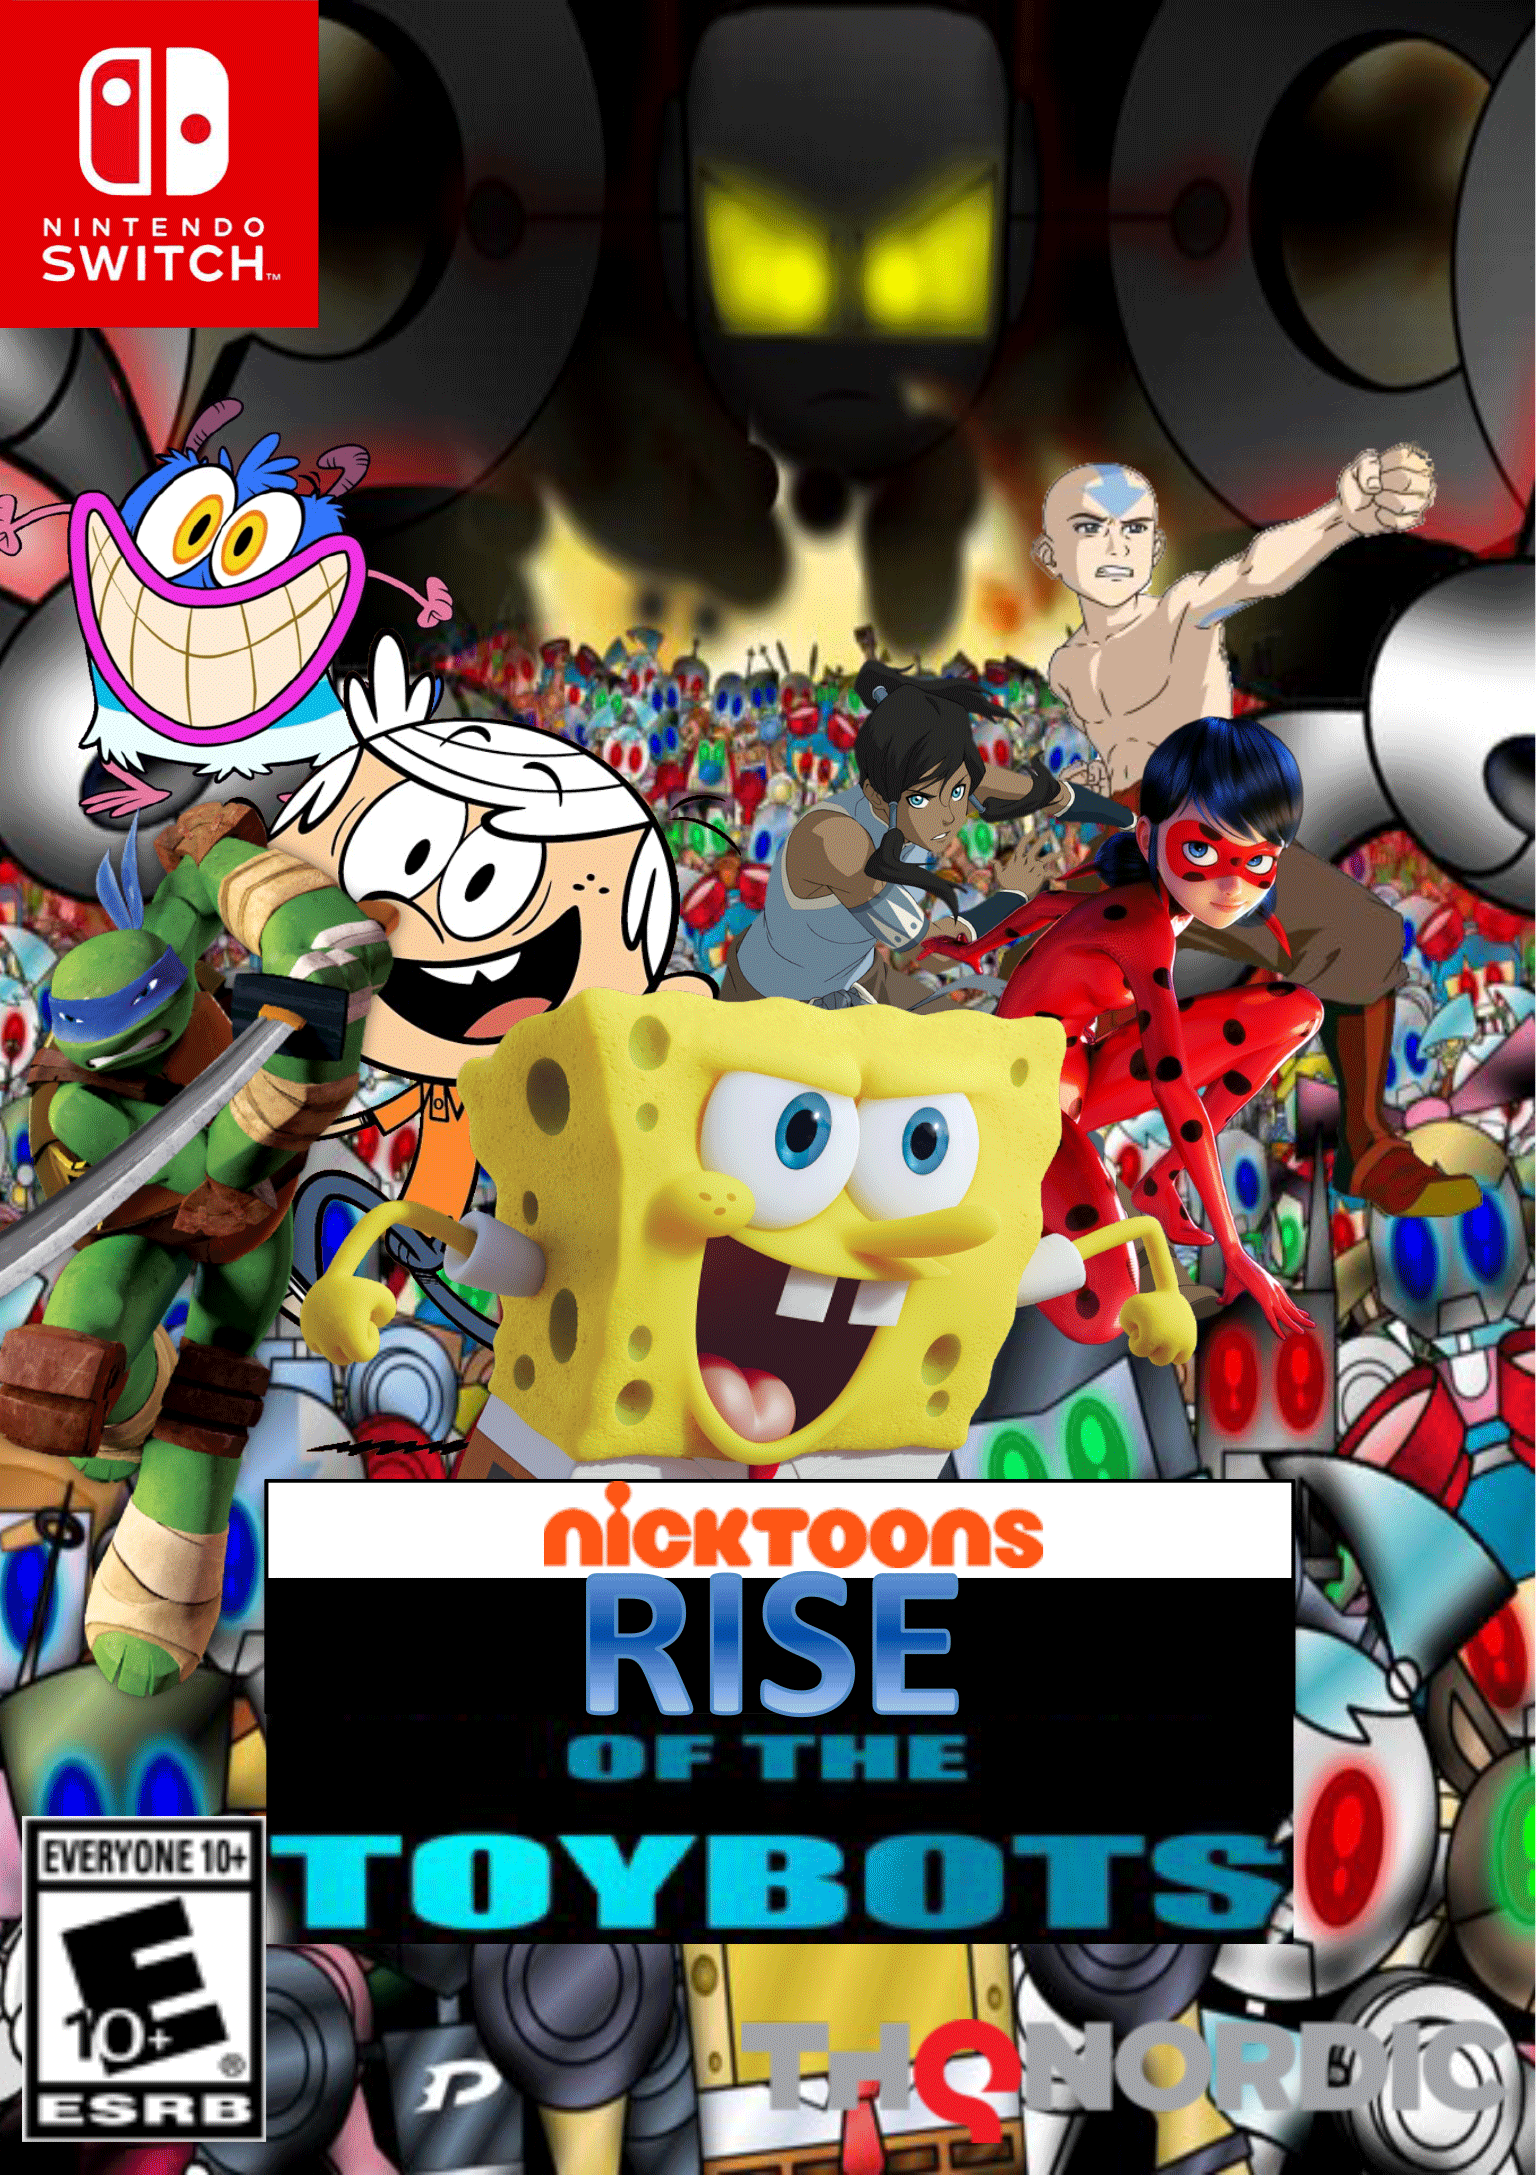 Nicktoons: Rise of the Toybots